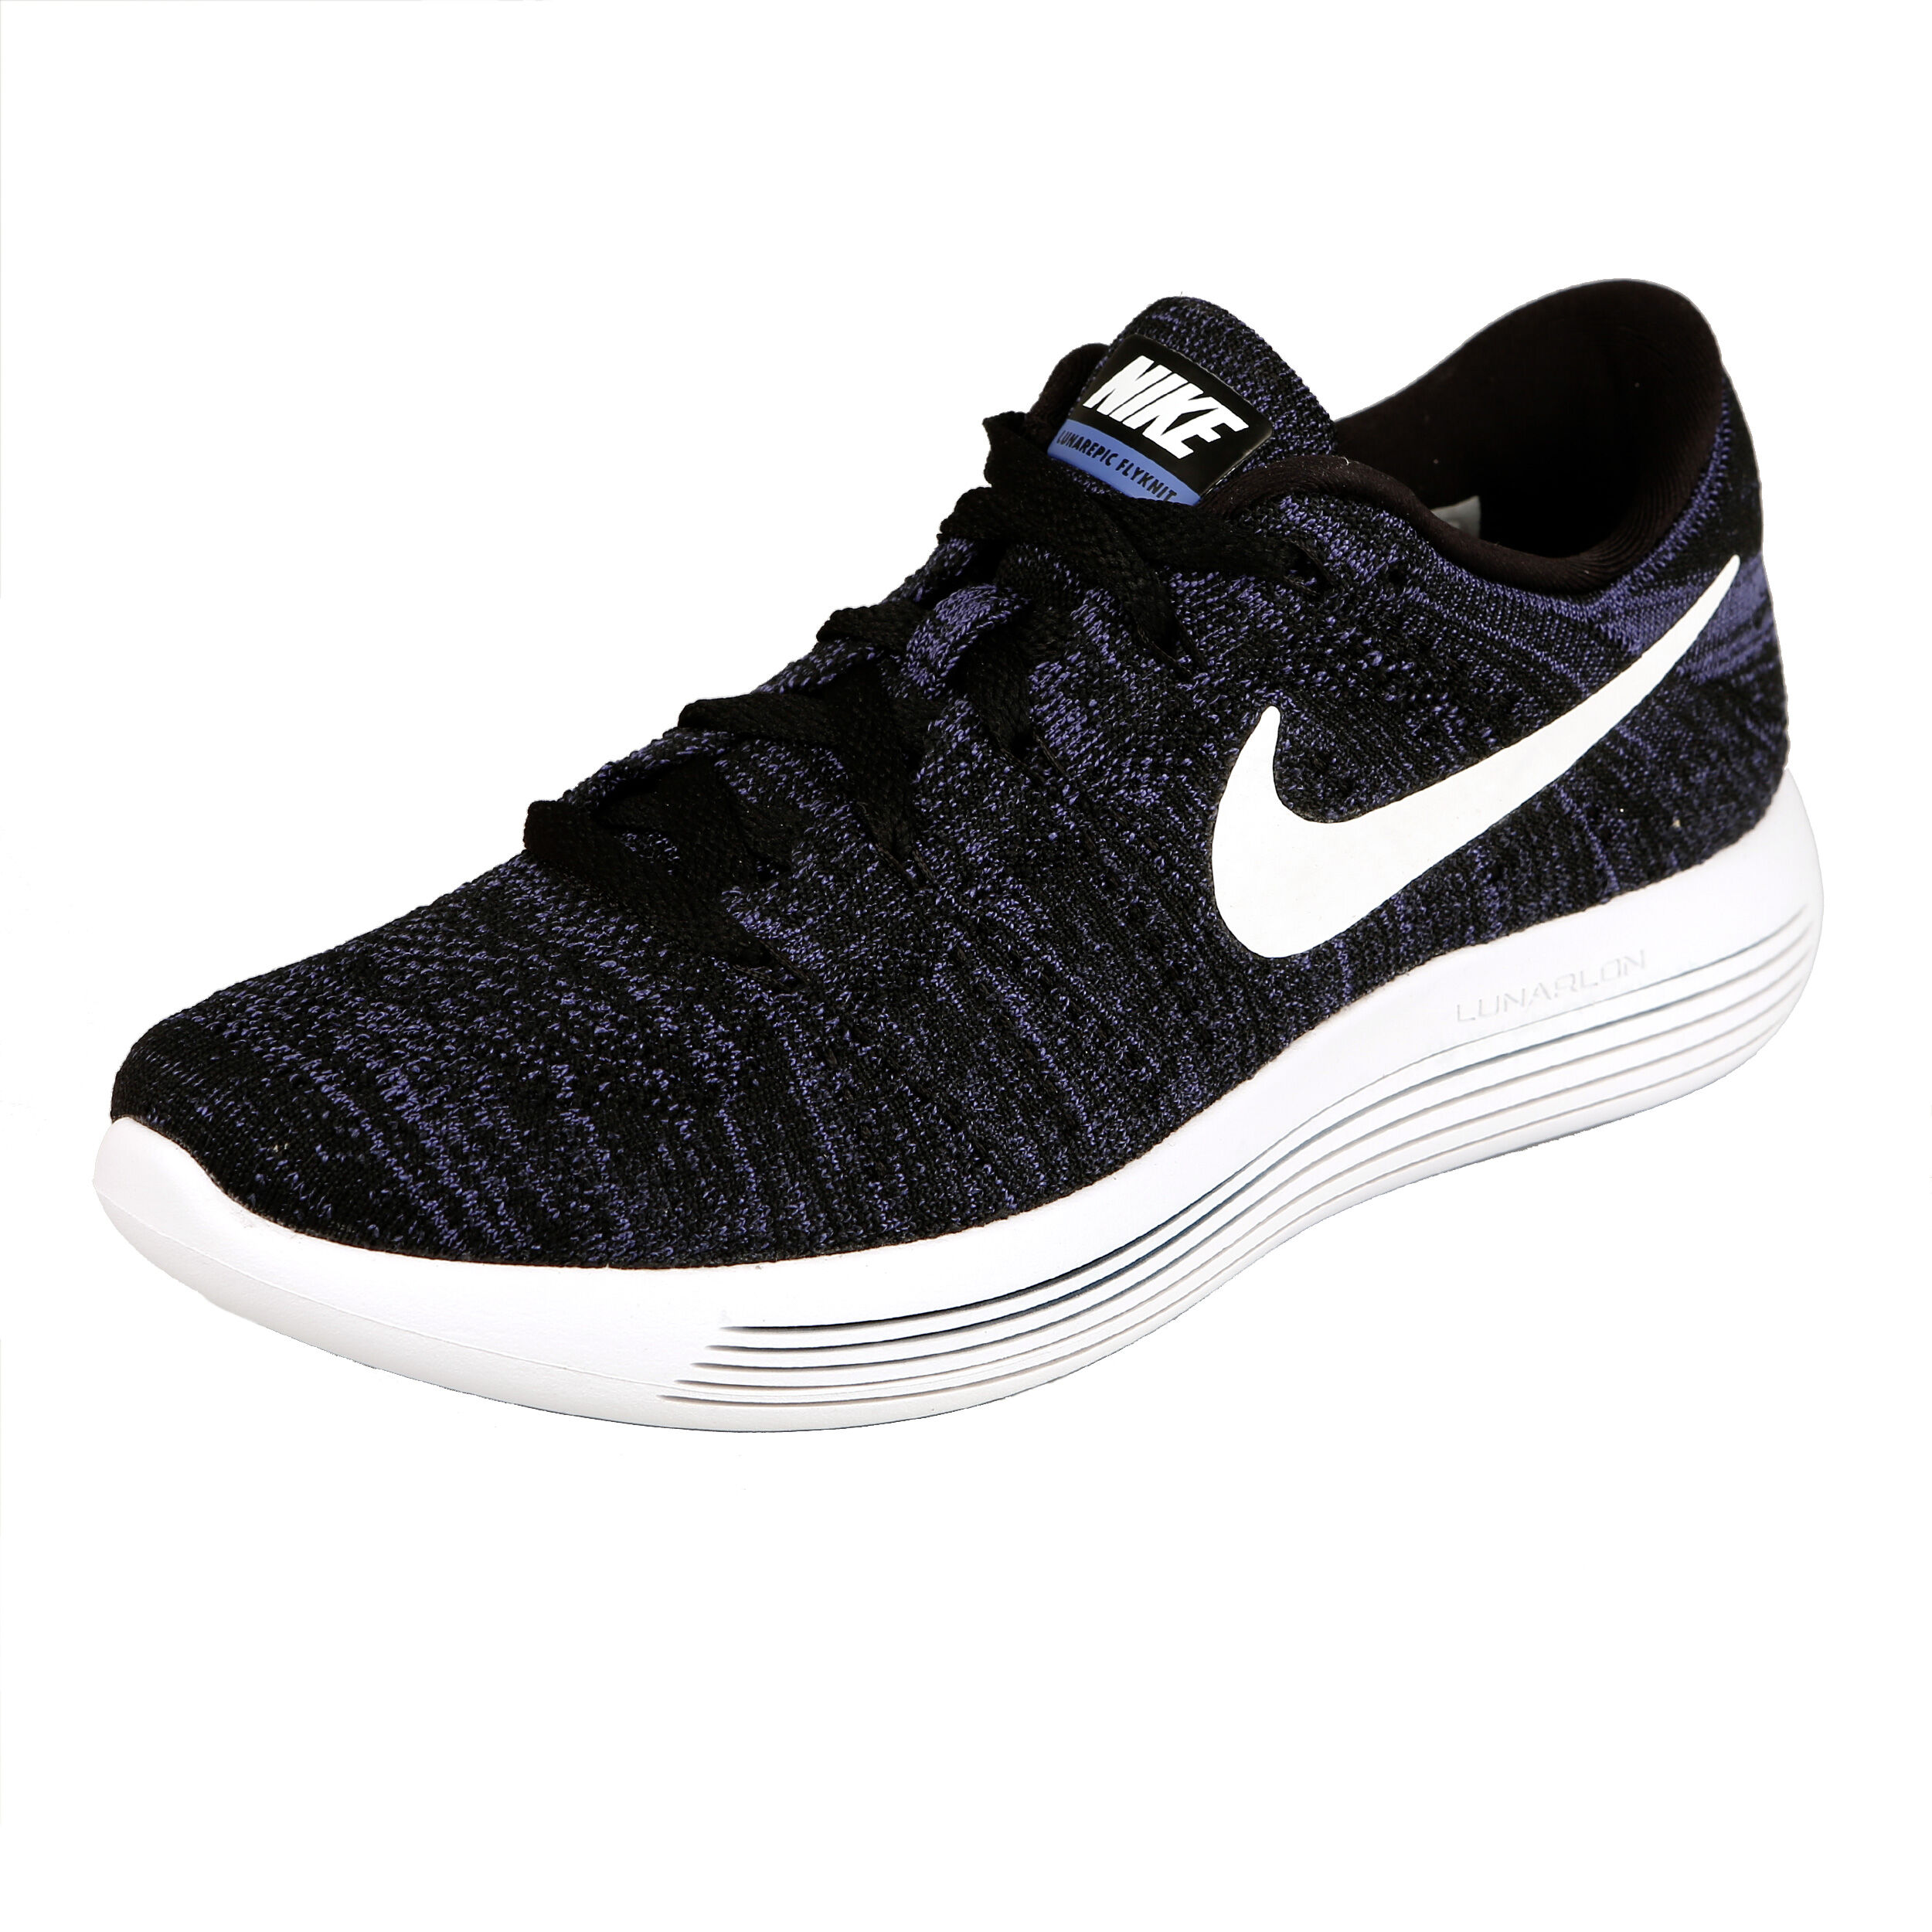 a39f8d47c2aad denmark buy nike lunarepic flyknit neutral running shoe women black white  dfe9b c7dfa